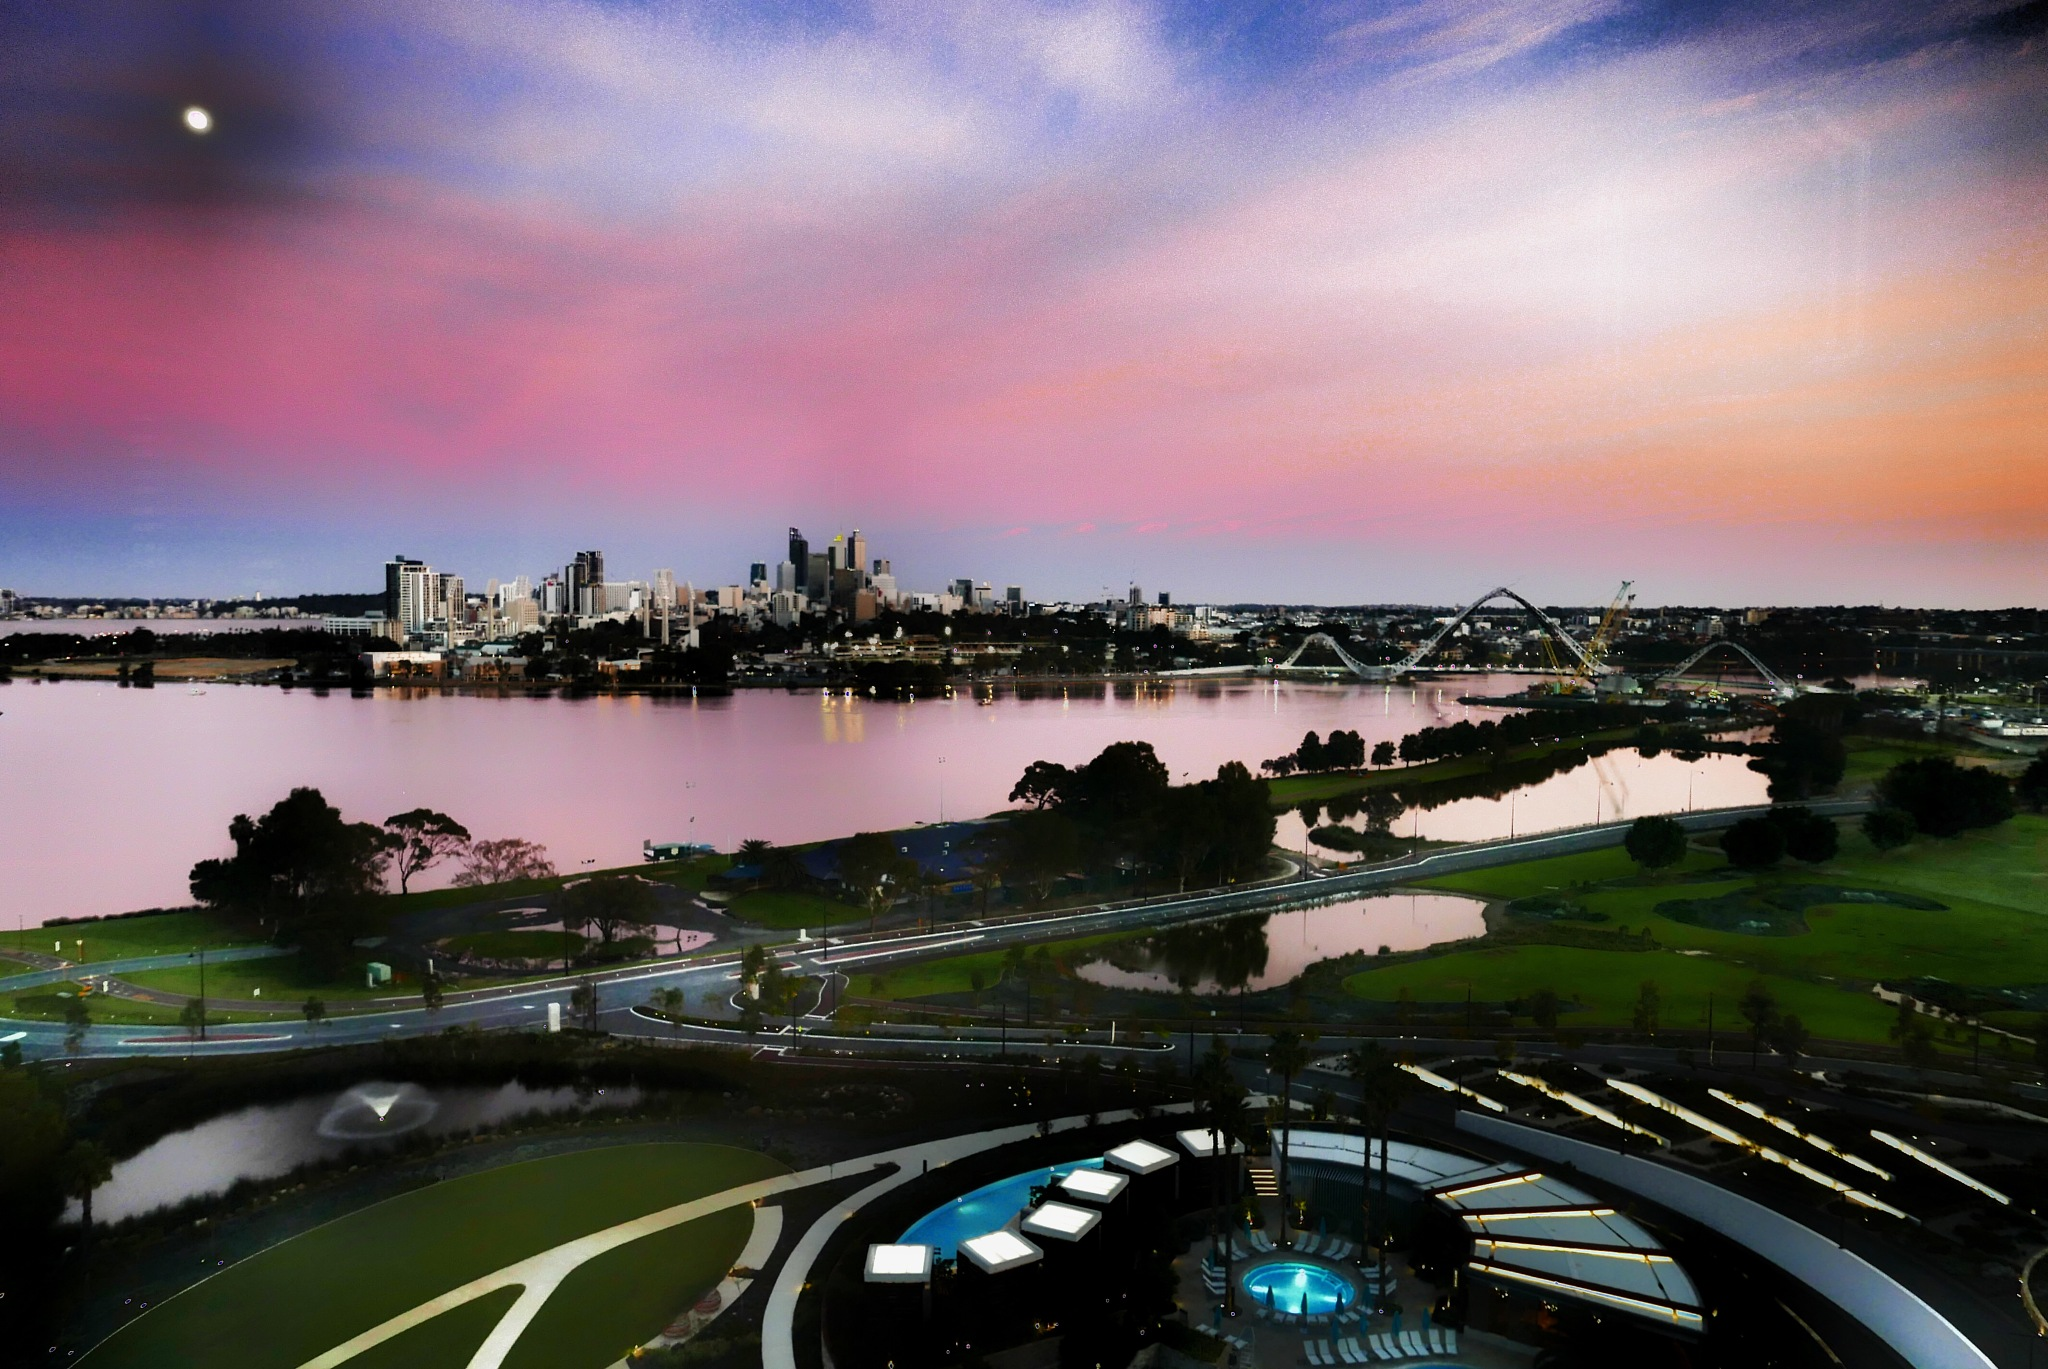 Sunrise over Perth by Peter Holton